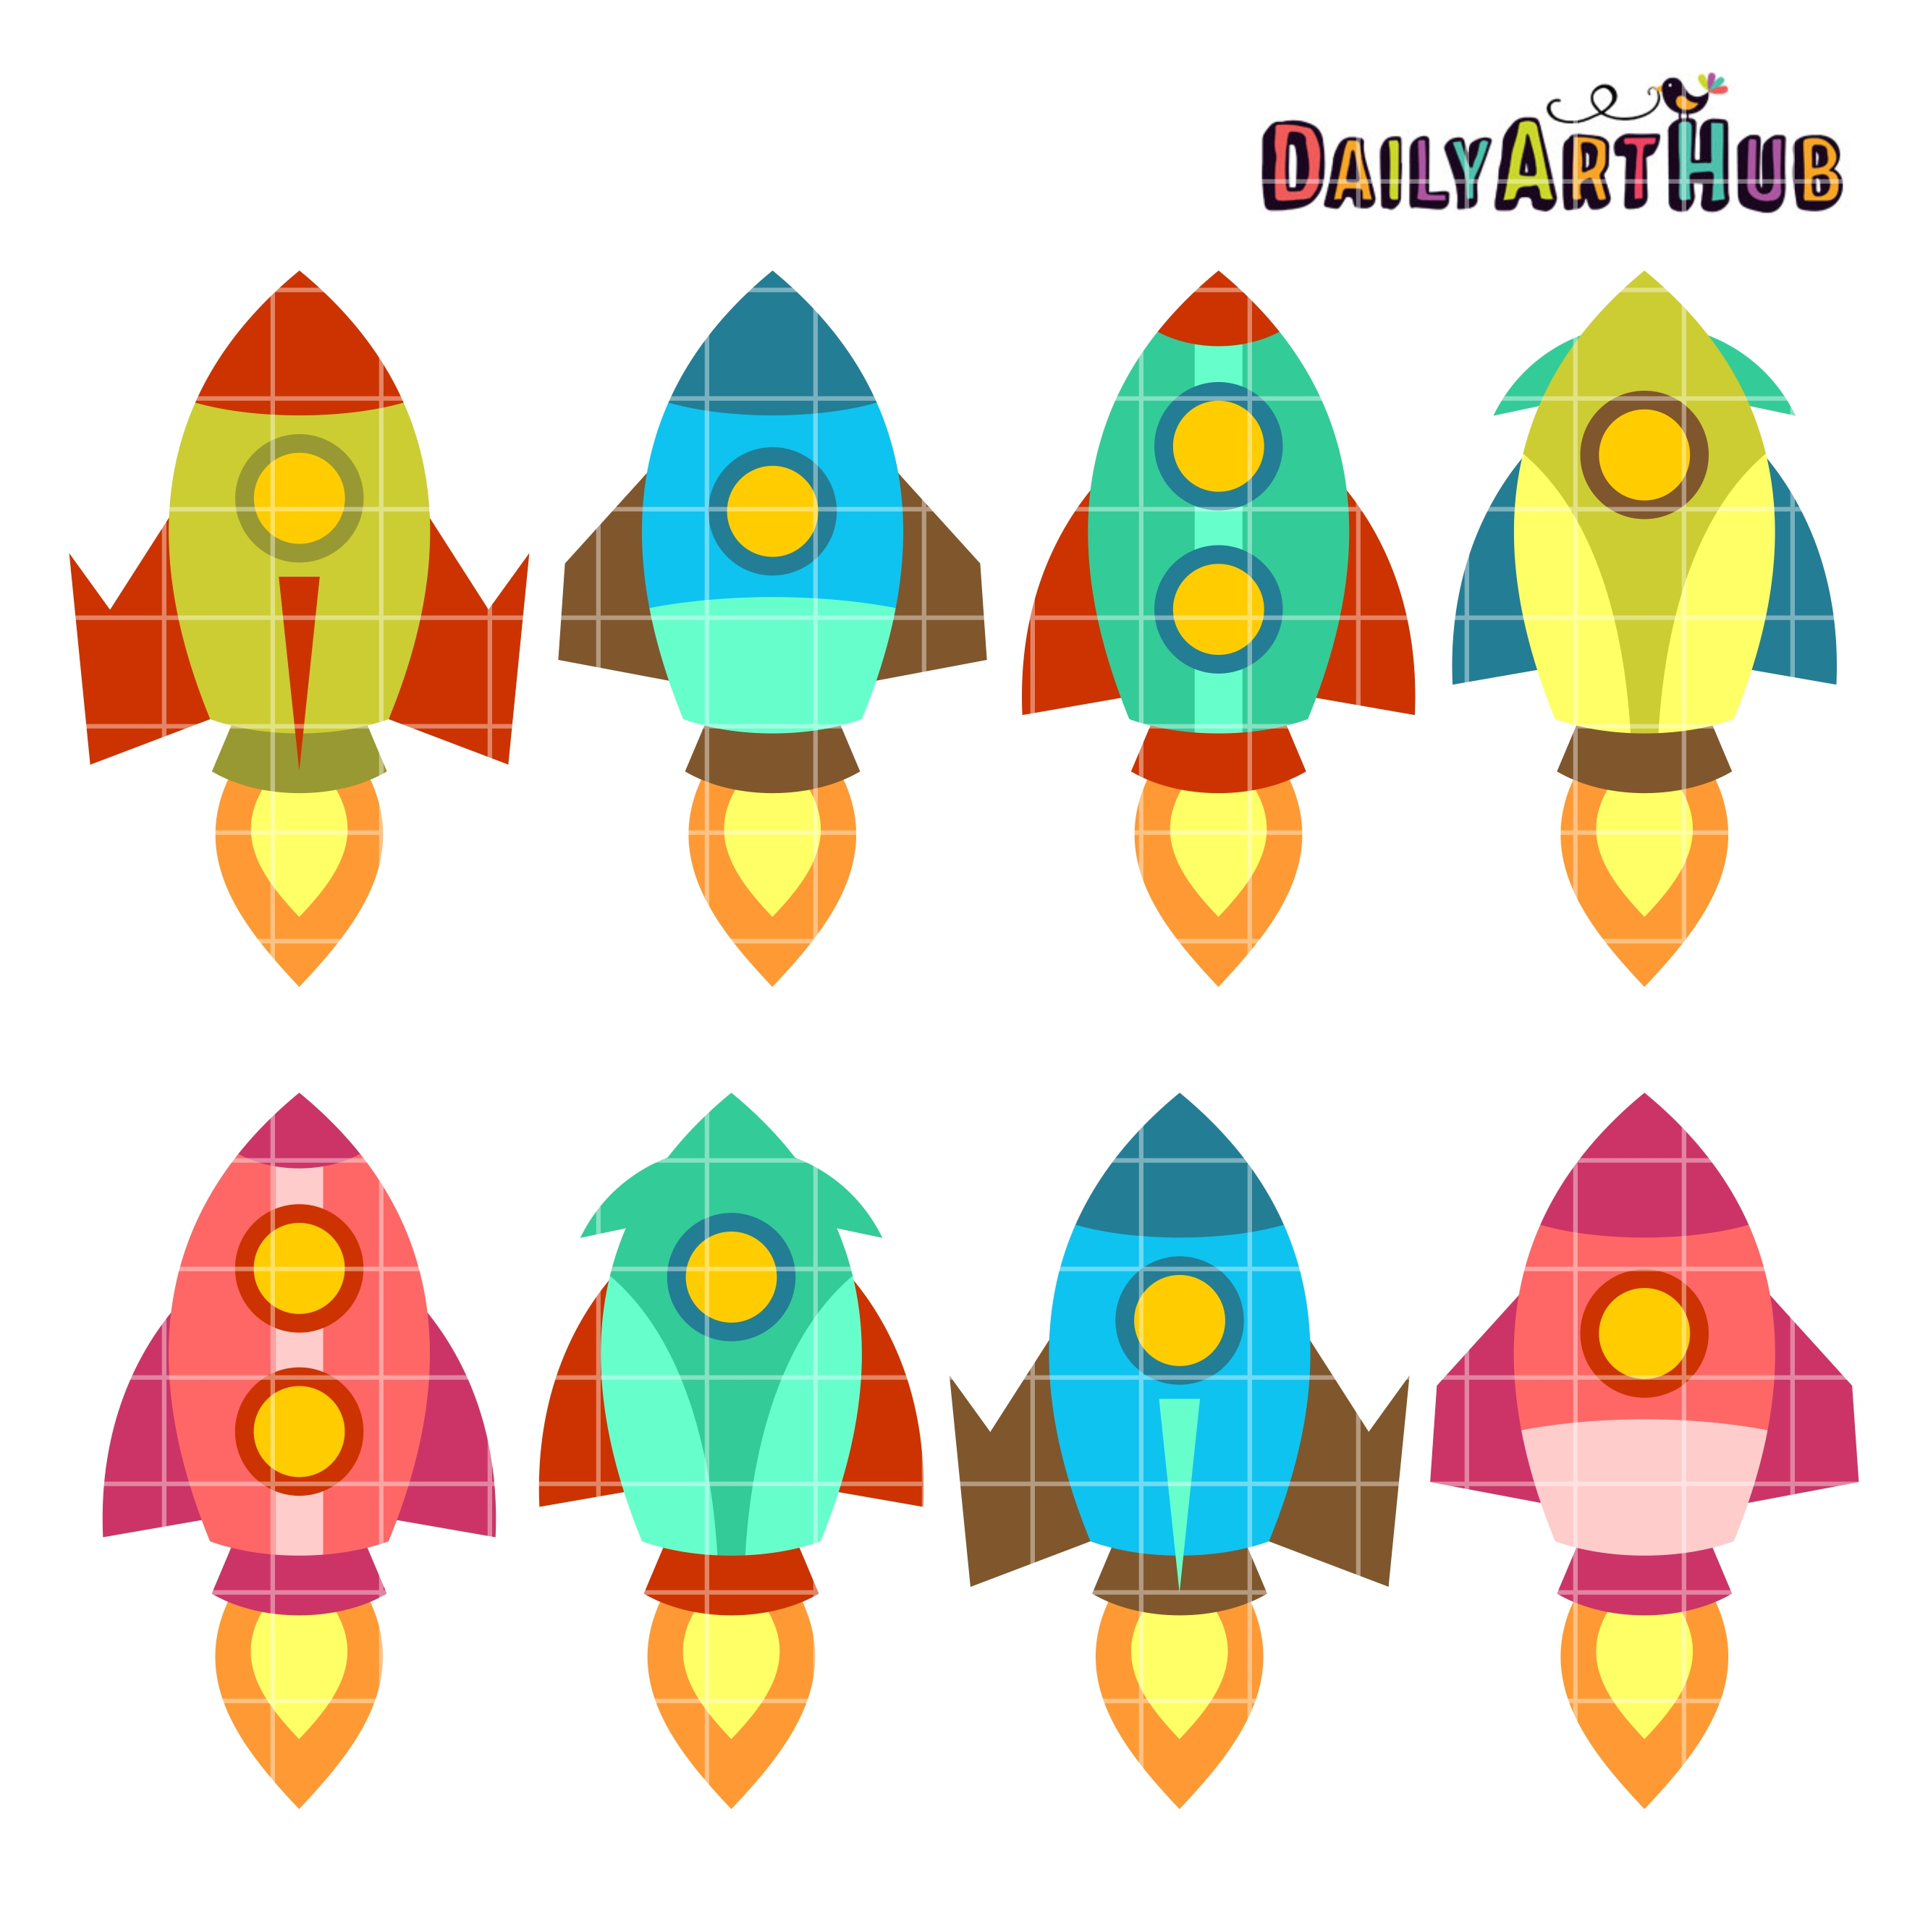 2664x2670 Old School Rocket Ships Clip Art Set Daily Art Hub Free Clip